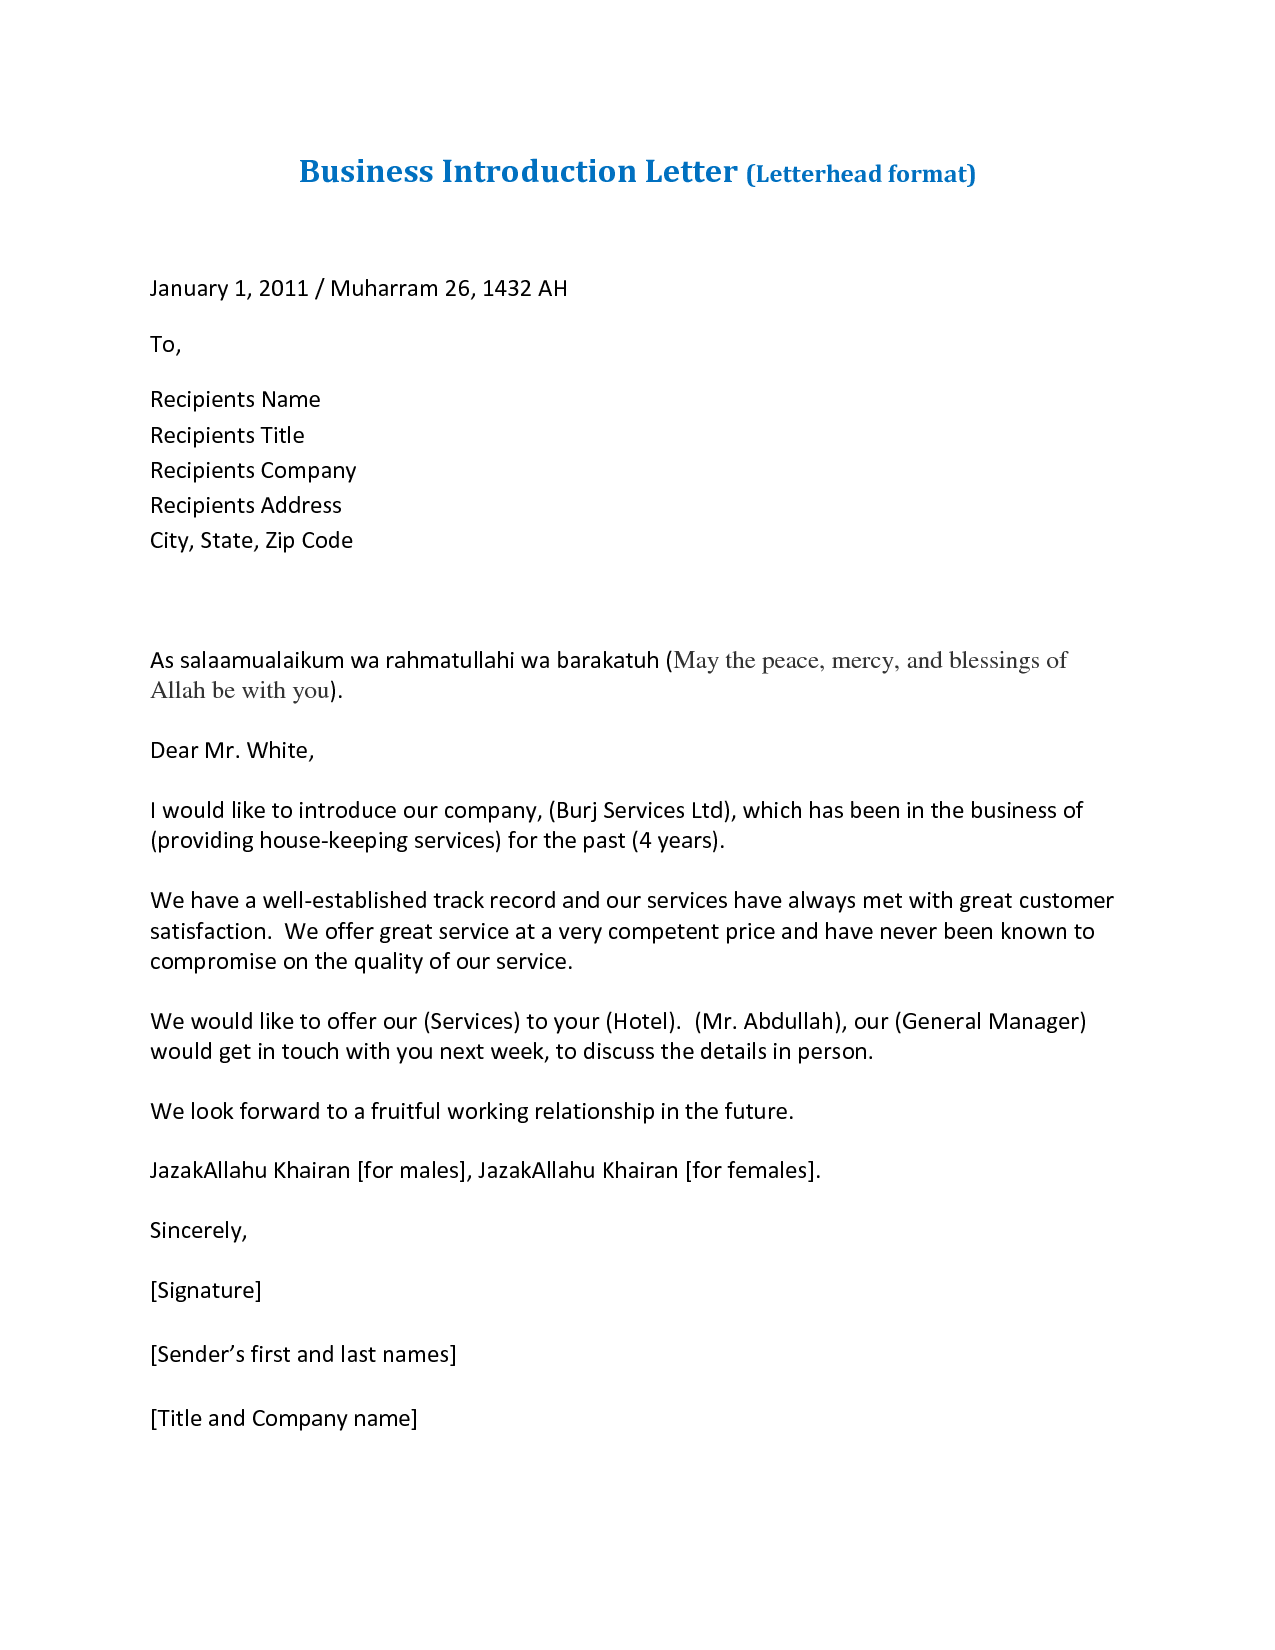 business introductory letter template – elrey de bodas